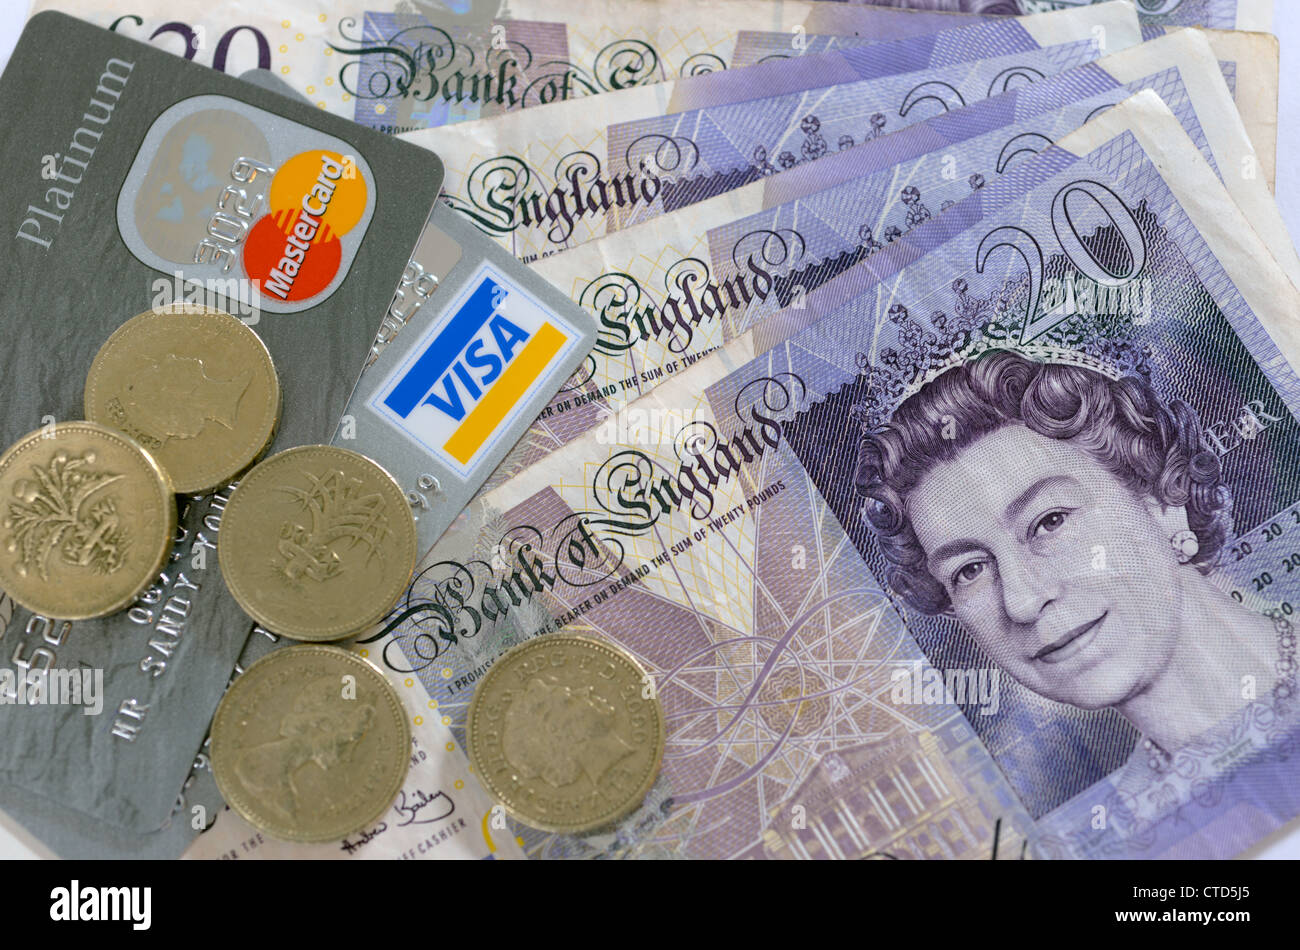 20 pound notes and one pound coins with credit card - Stock Image